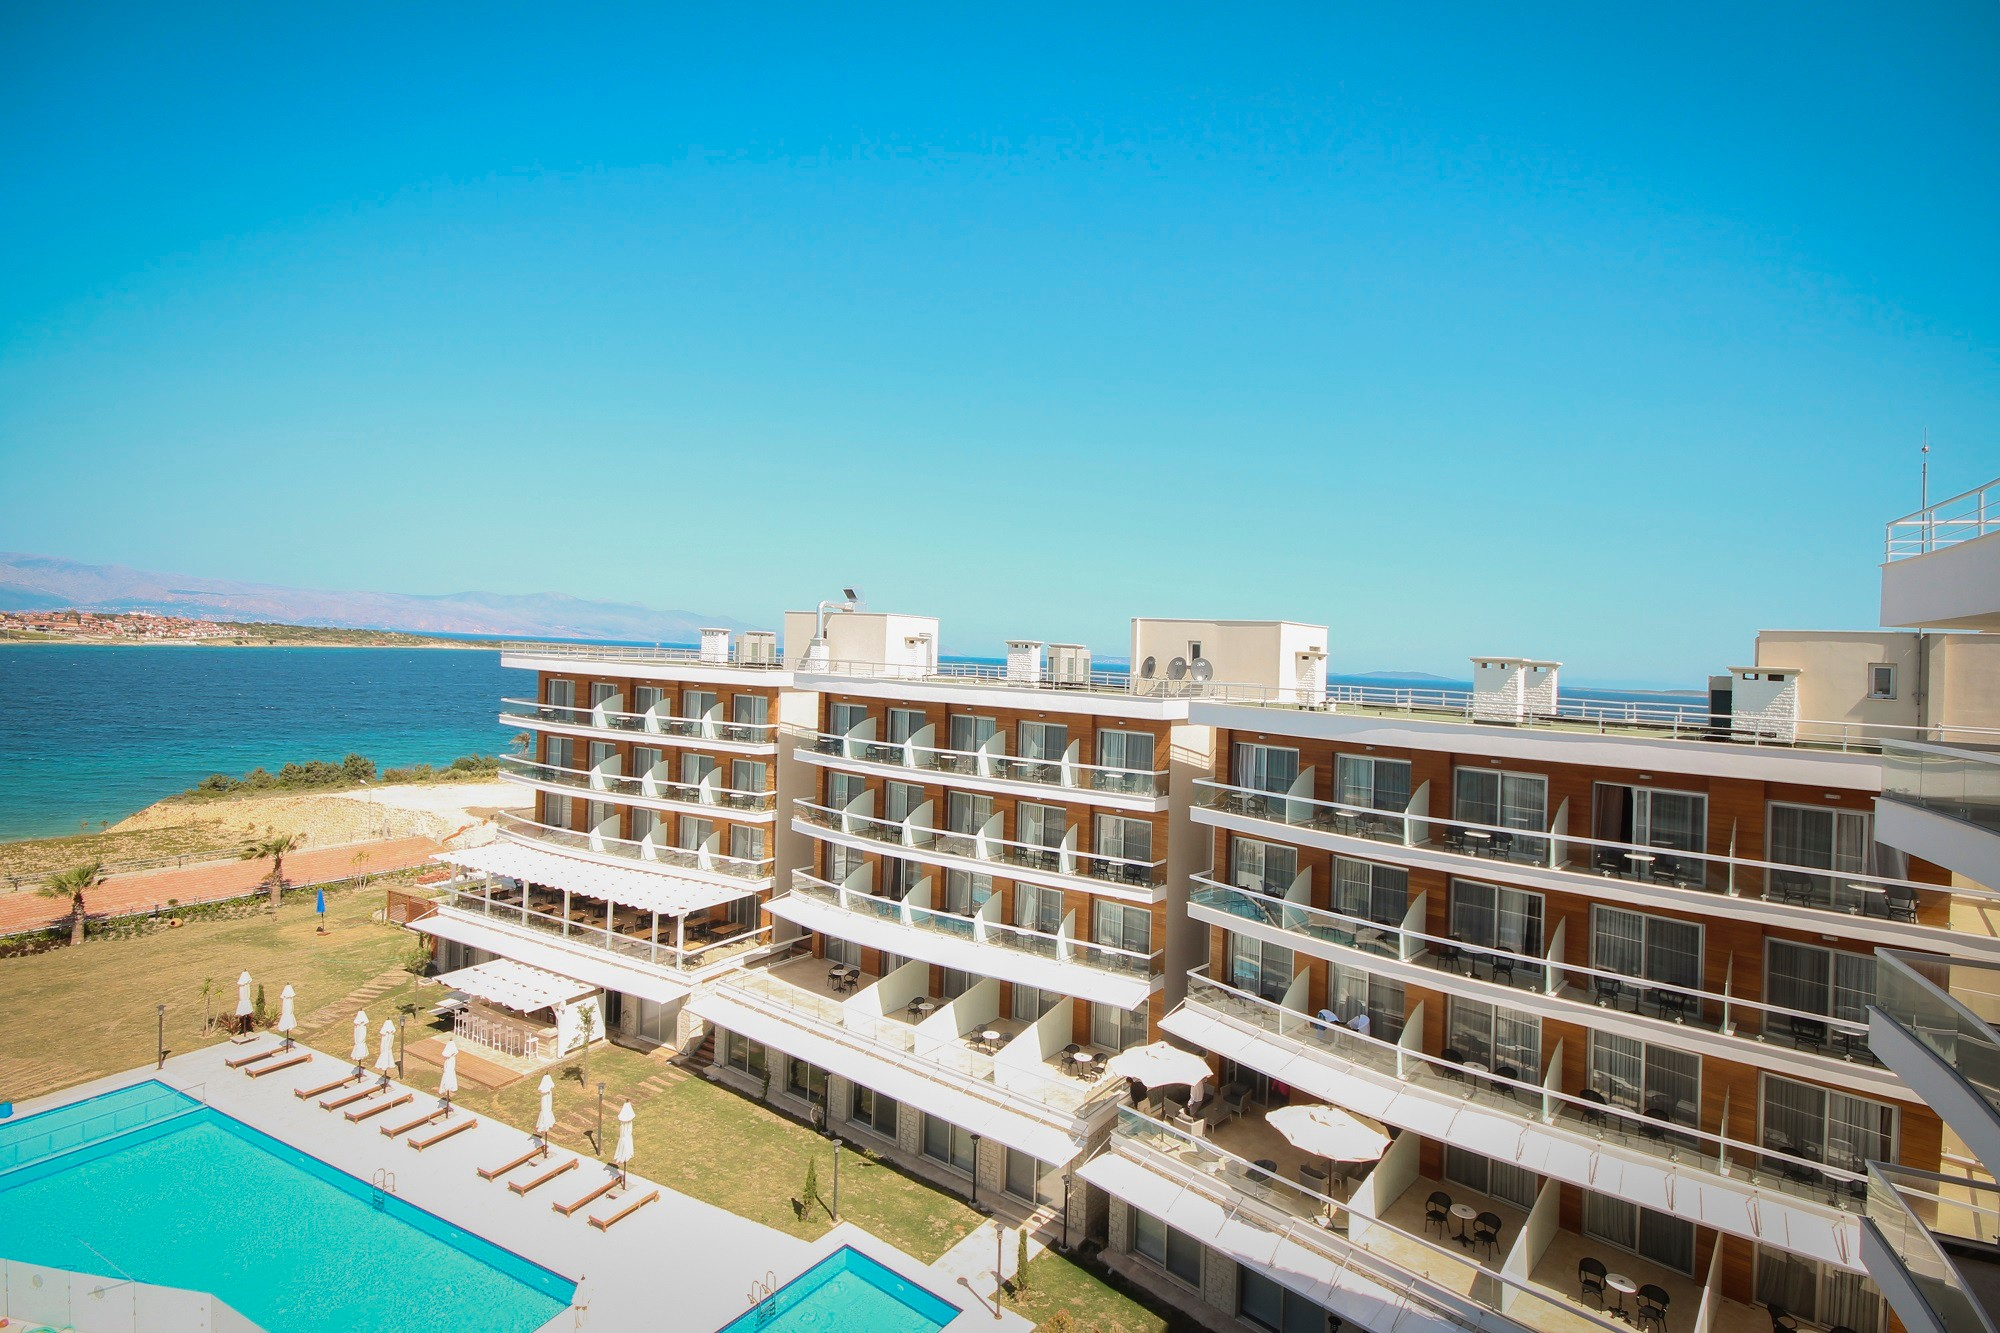 Casa de playa luxury hotel beach e me otelleri touristica for Apartamentos playa